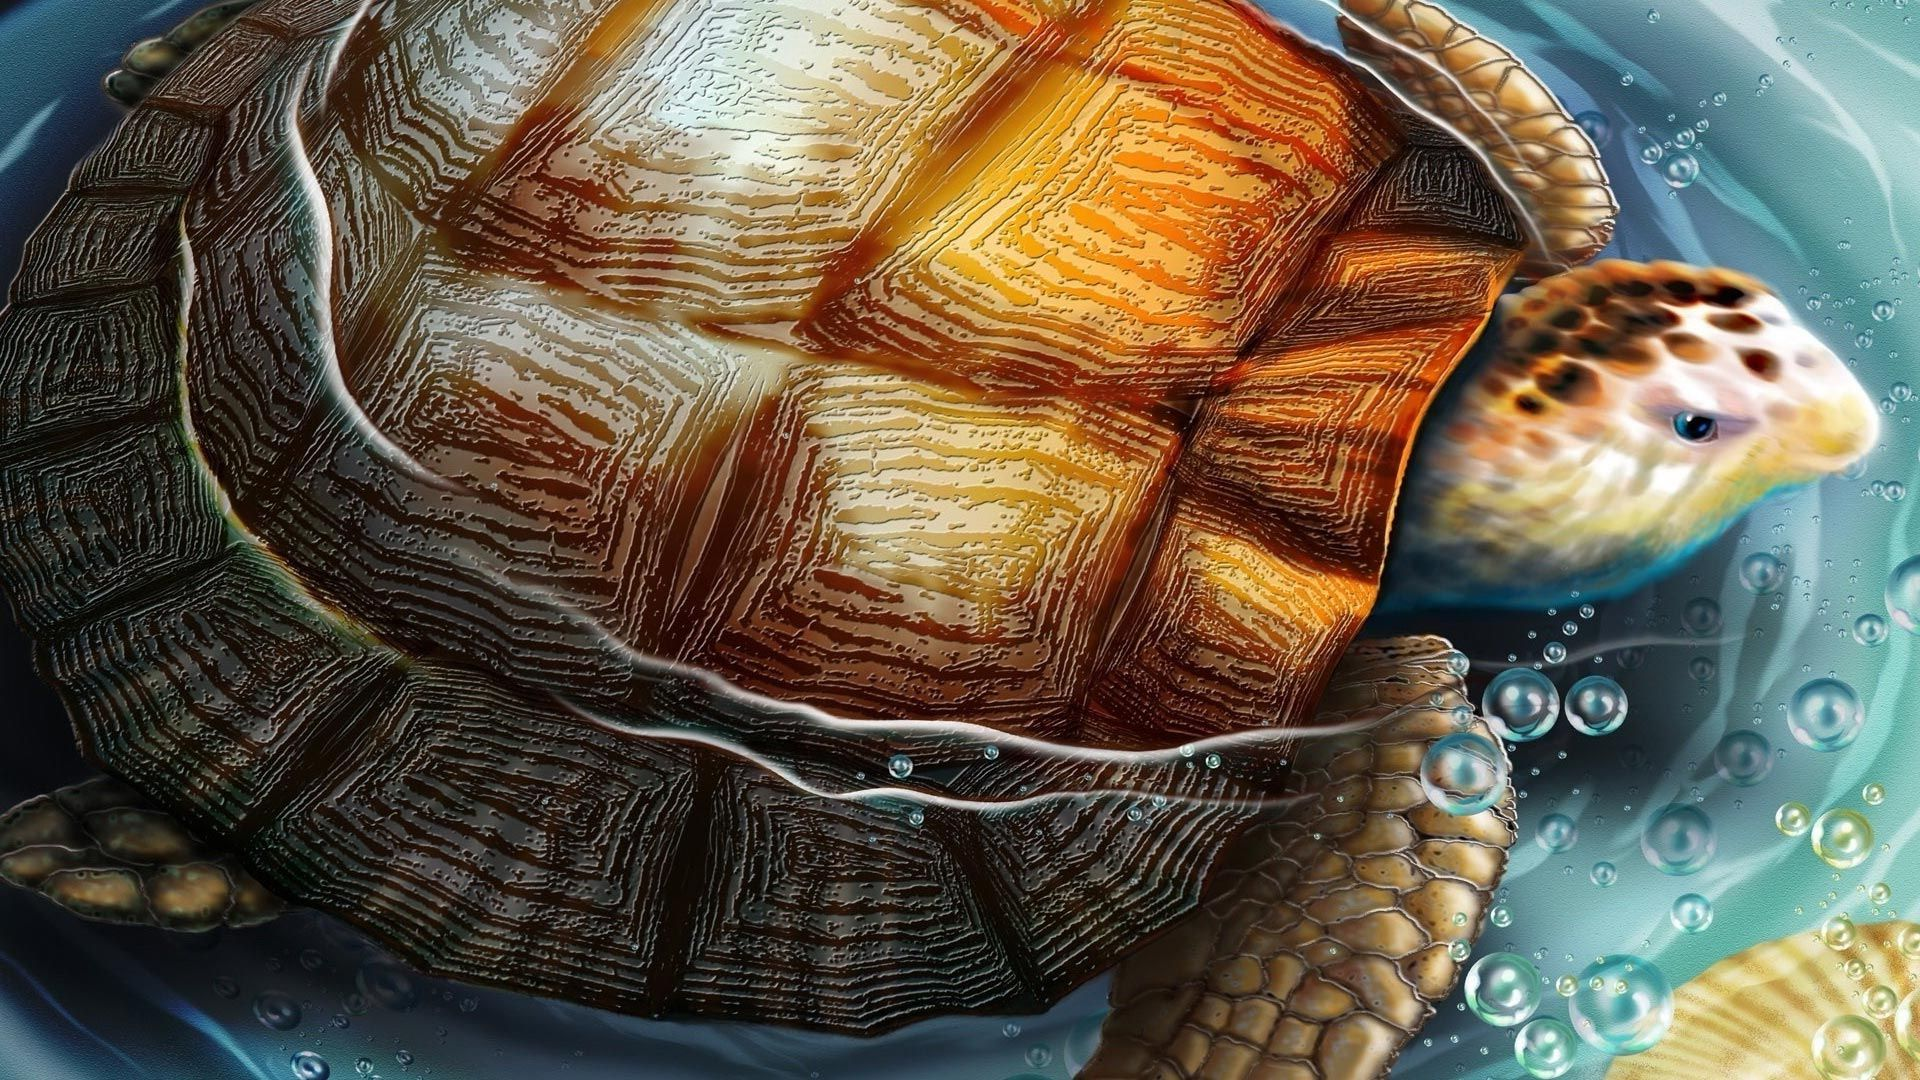 Turtle Beautiful Pictures